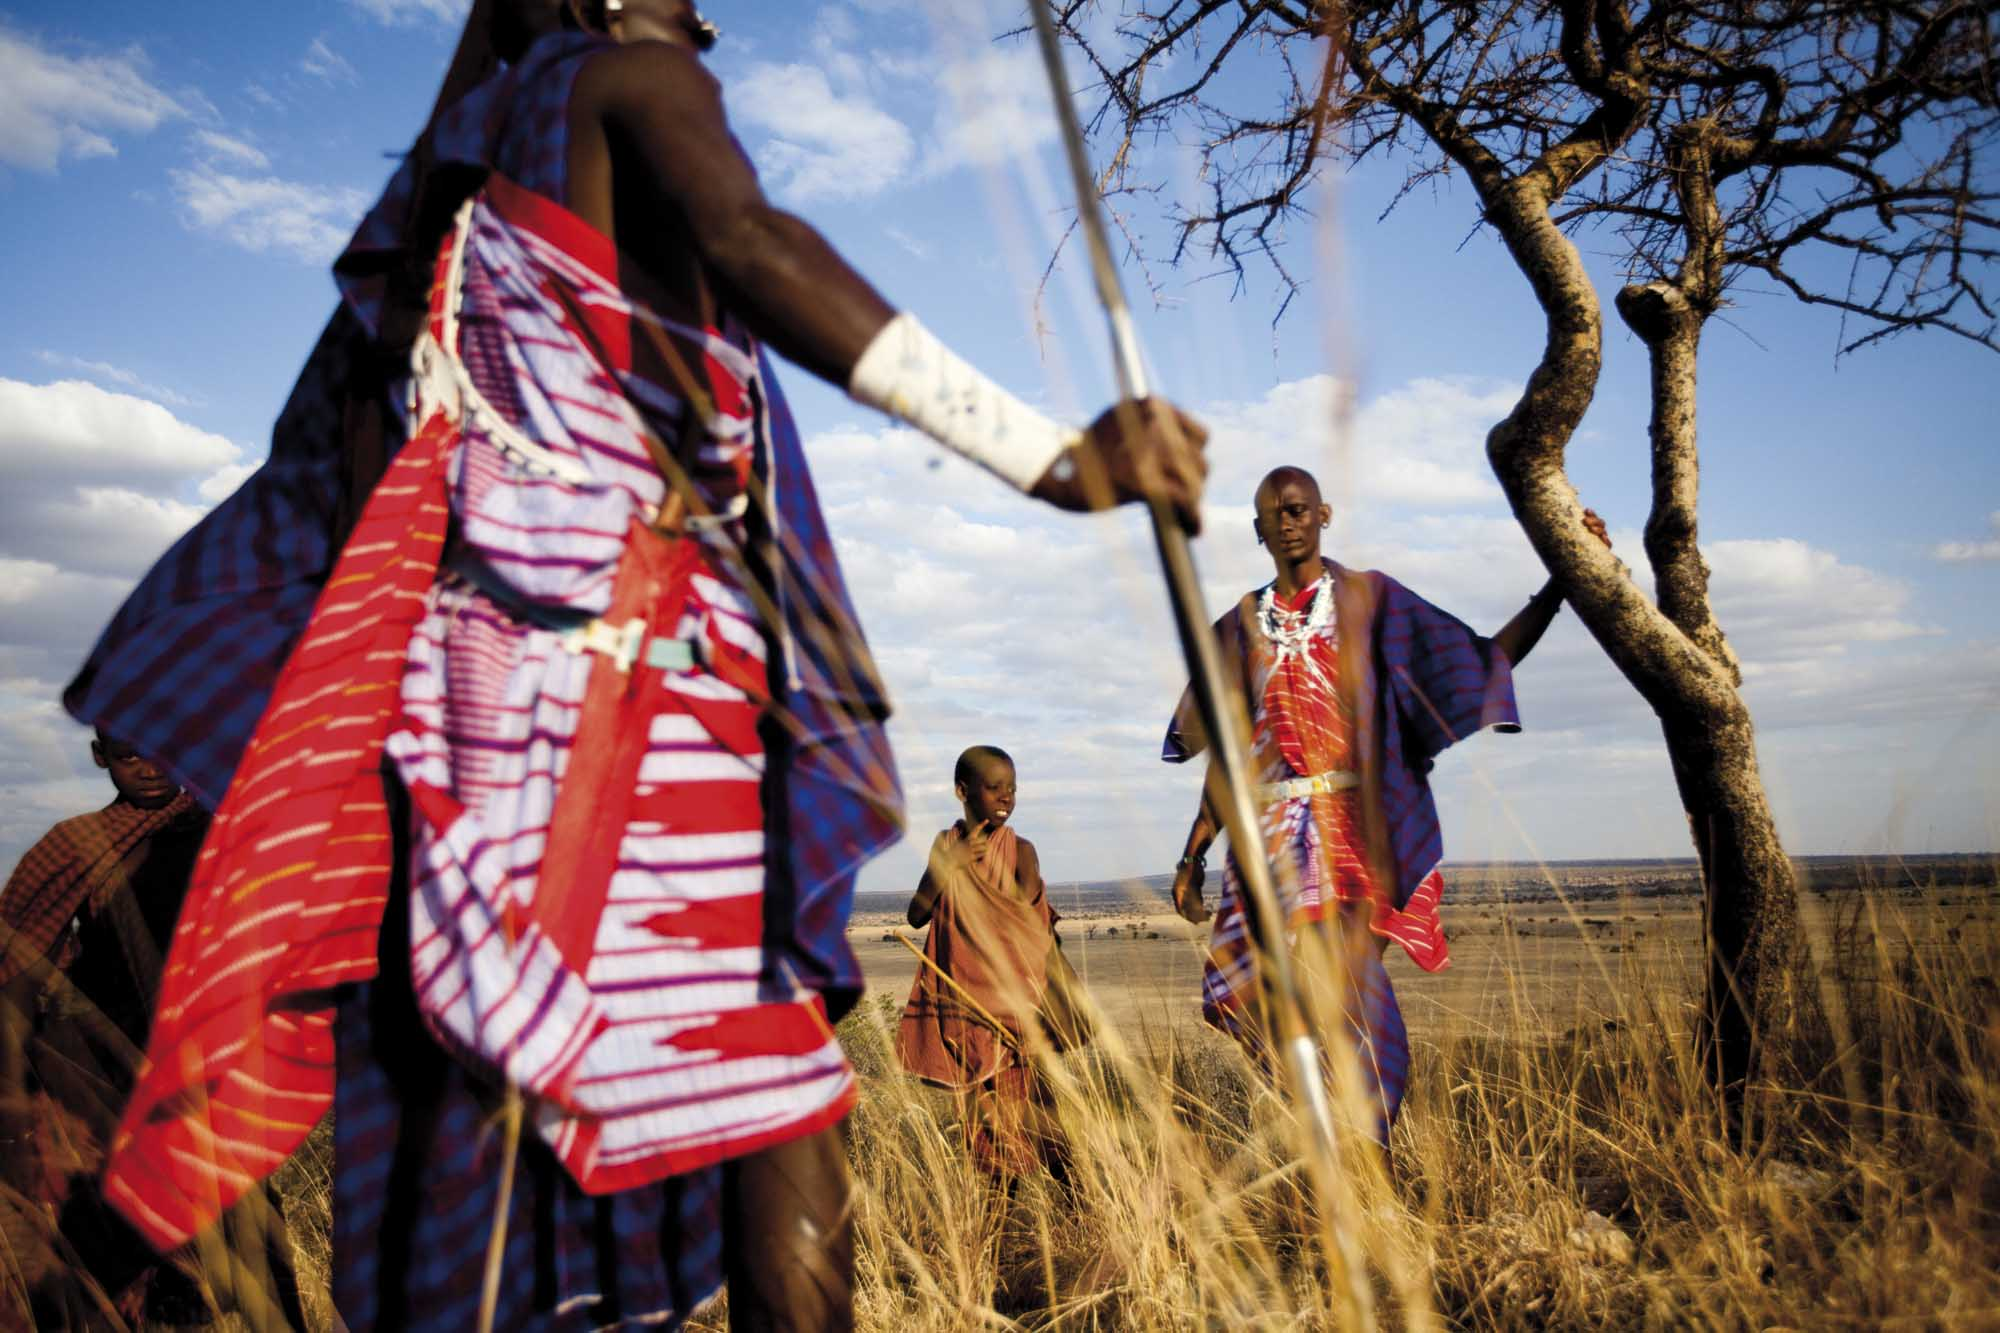 Maasai warriors dressed in brightly colored clothes and standing in the tall grass near a tree during tanzania safari